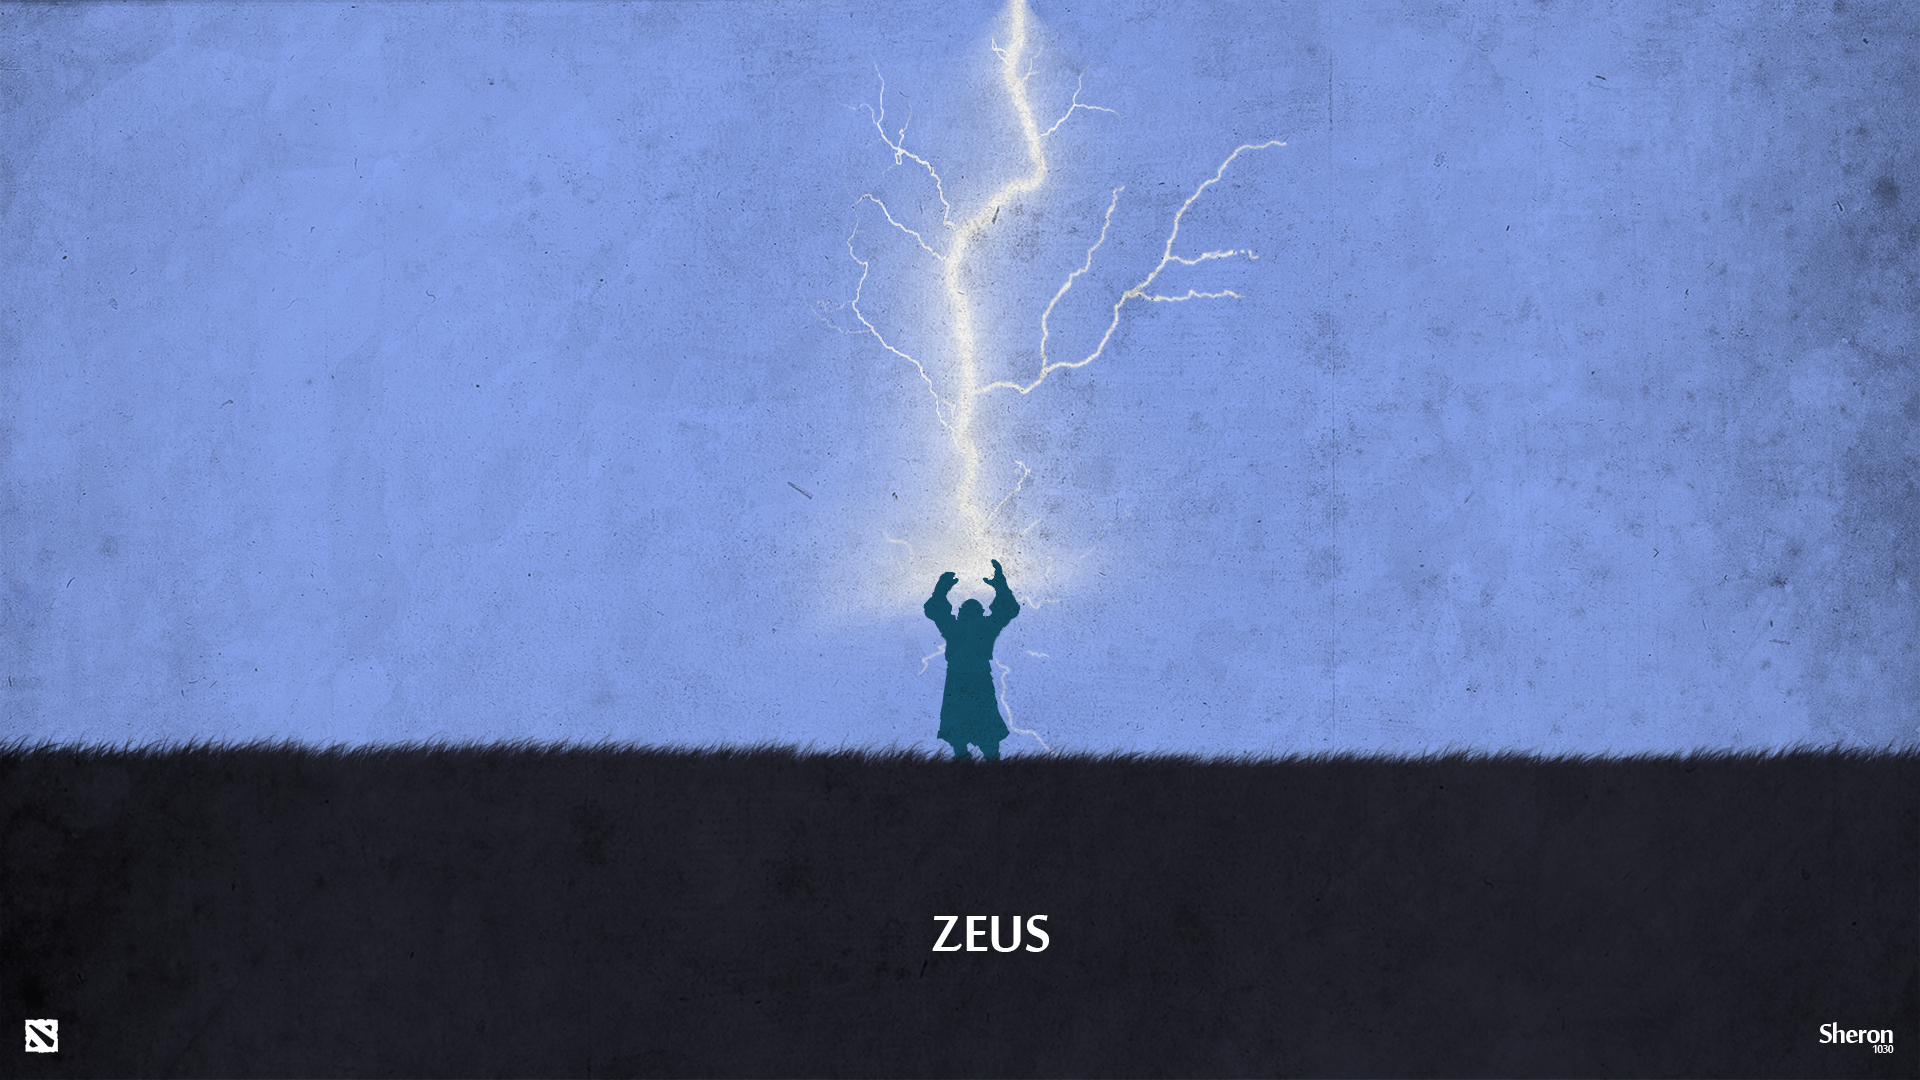 dota 2 zeus wallpaper by sheron1030 on deviantart